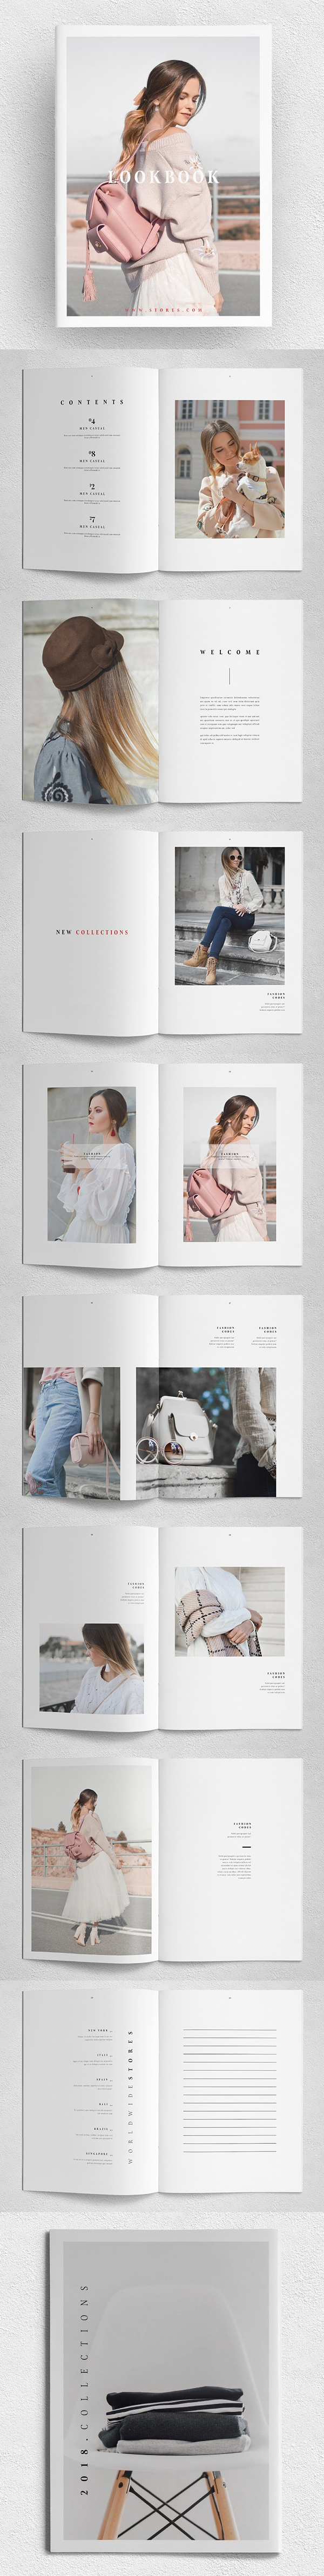 Plantilla de folleto - increíble lookbook